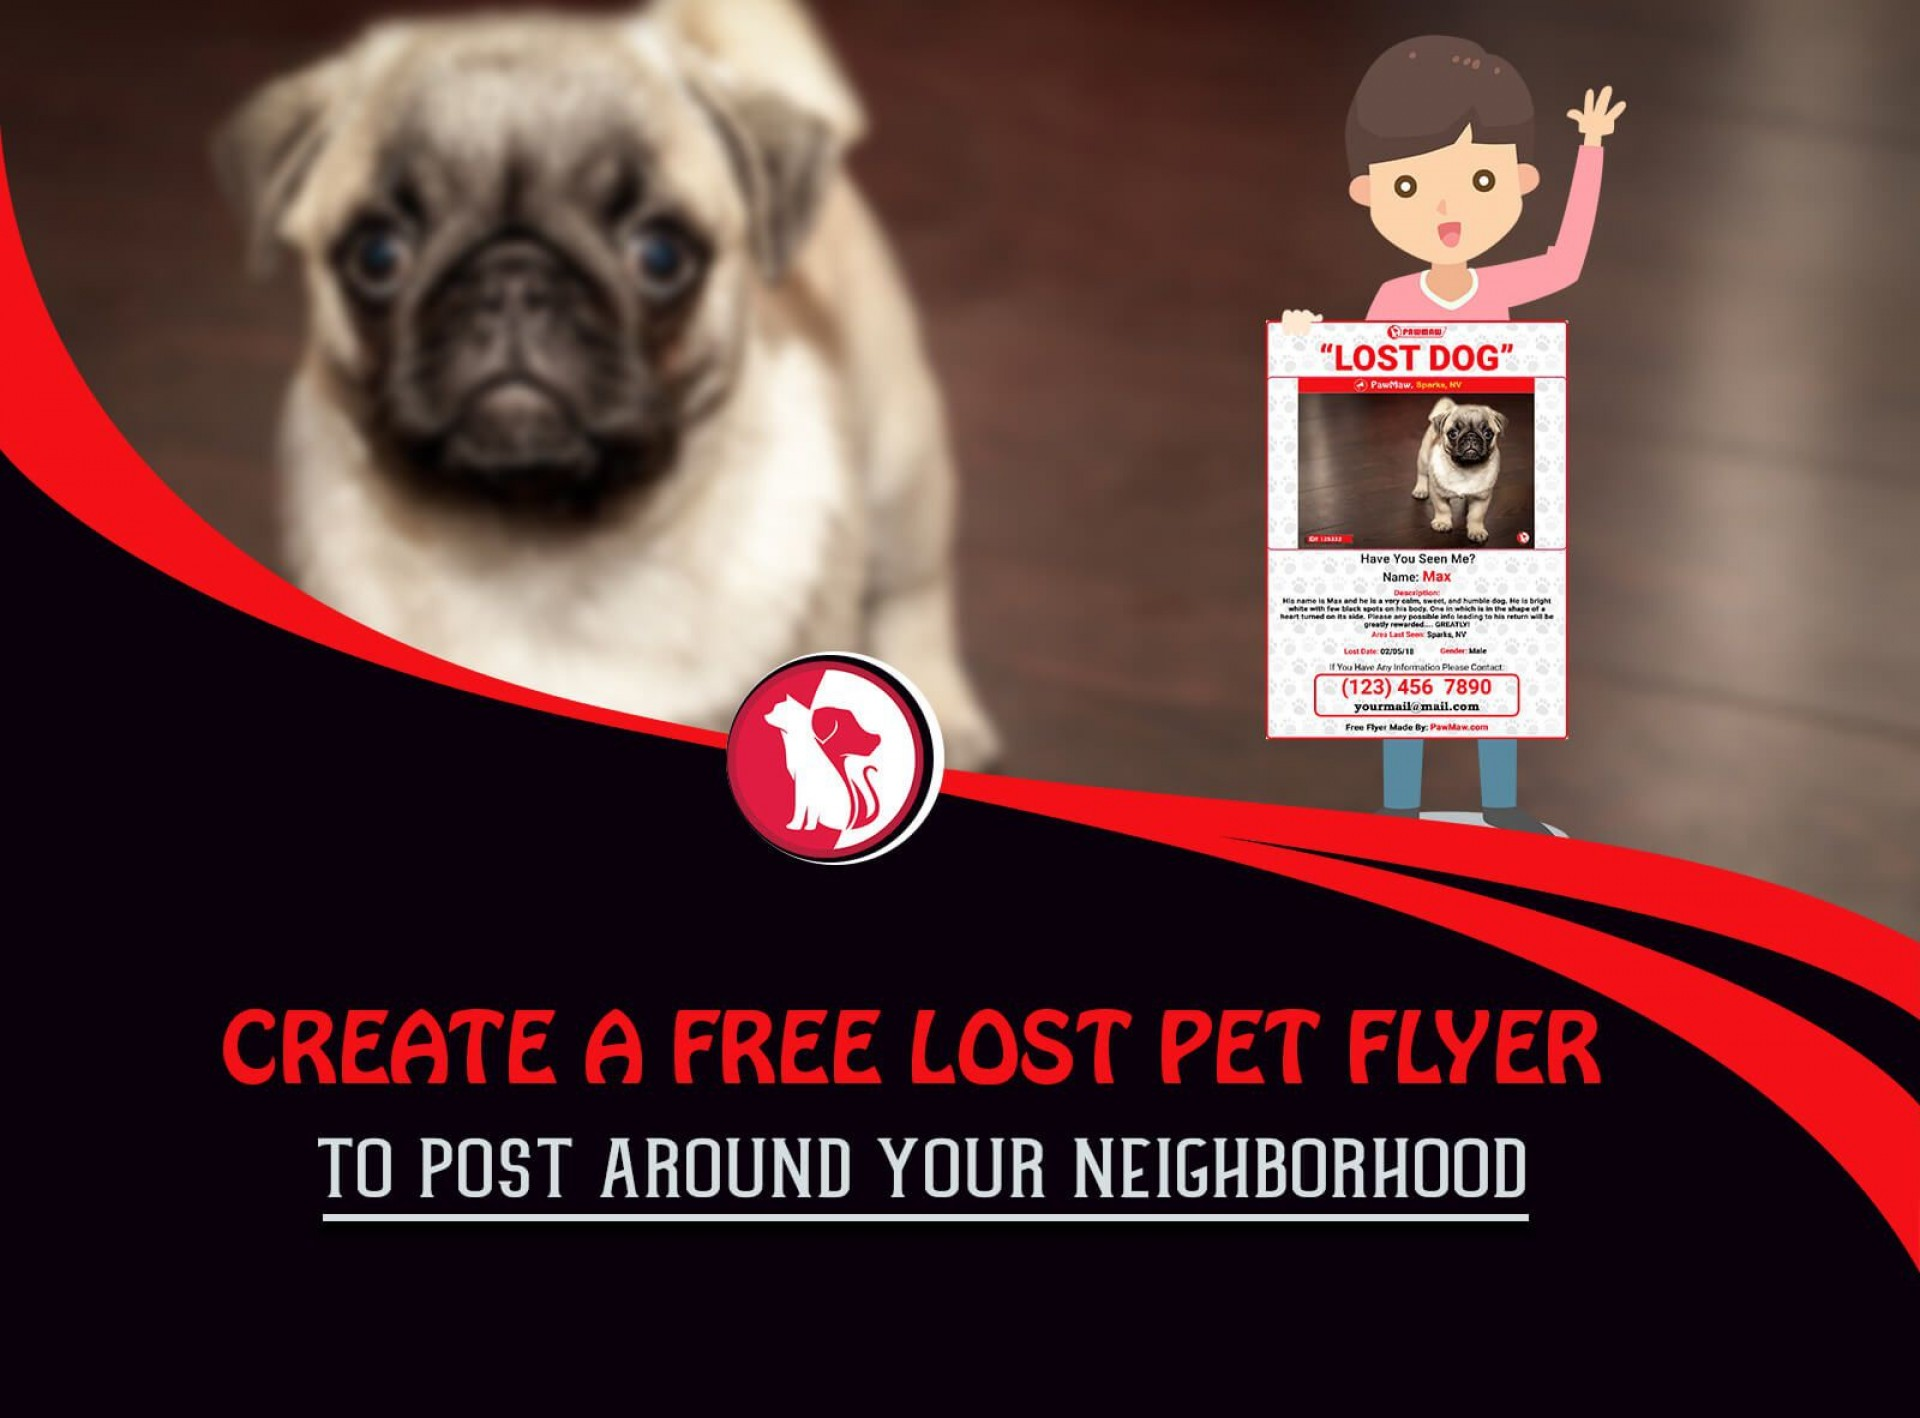 002 Remarkable Lost Dog Flyer Template Concept  Printable Missing Pet1920